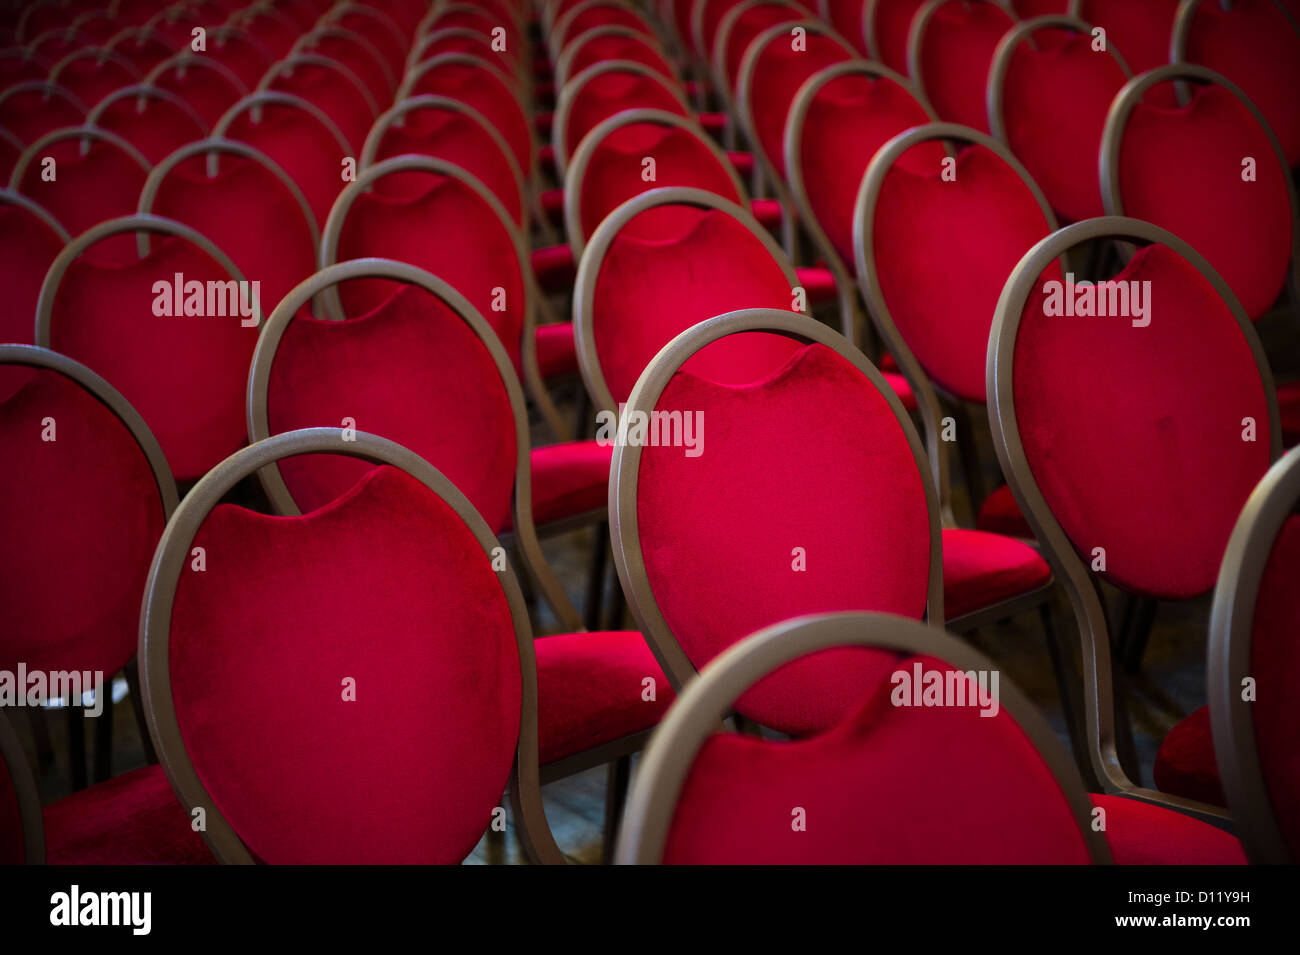 Rows Of Empty Plush Red Velvet Chairs In A Conference Hall   Stock Image